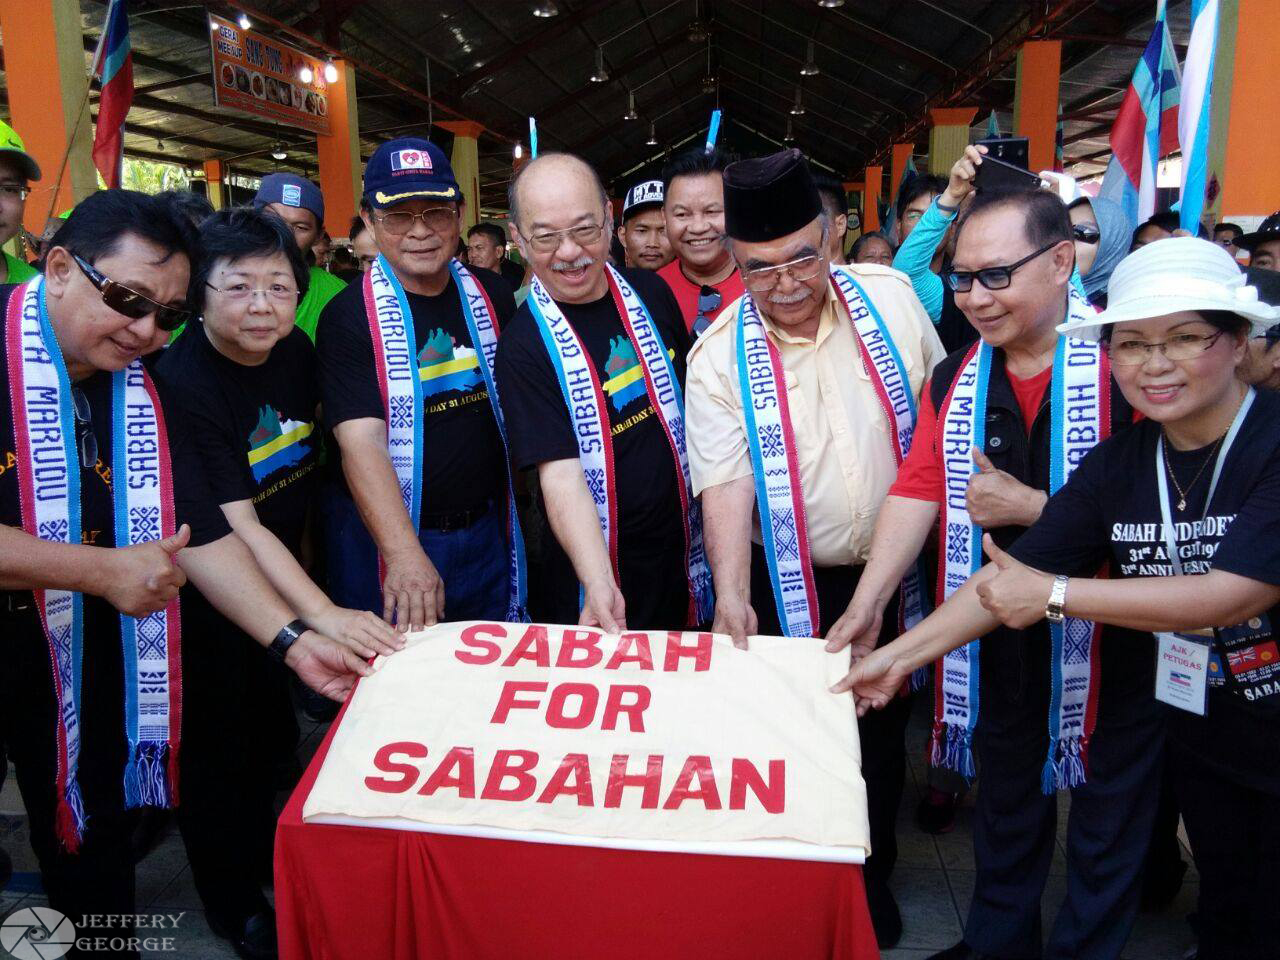 sabah for sabahan banner by all the united sabah alliance leader